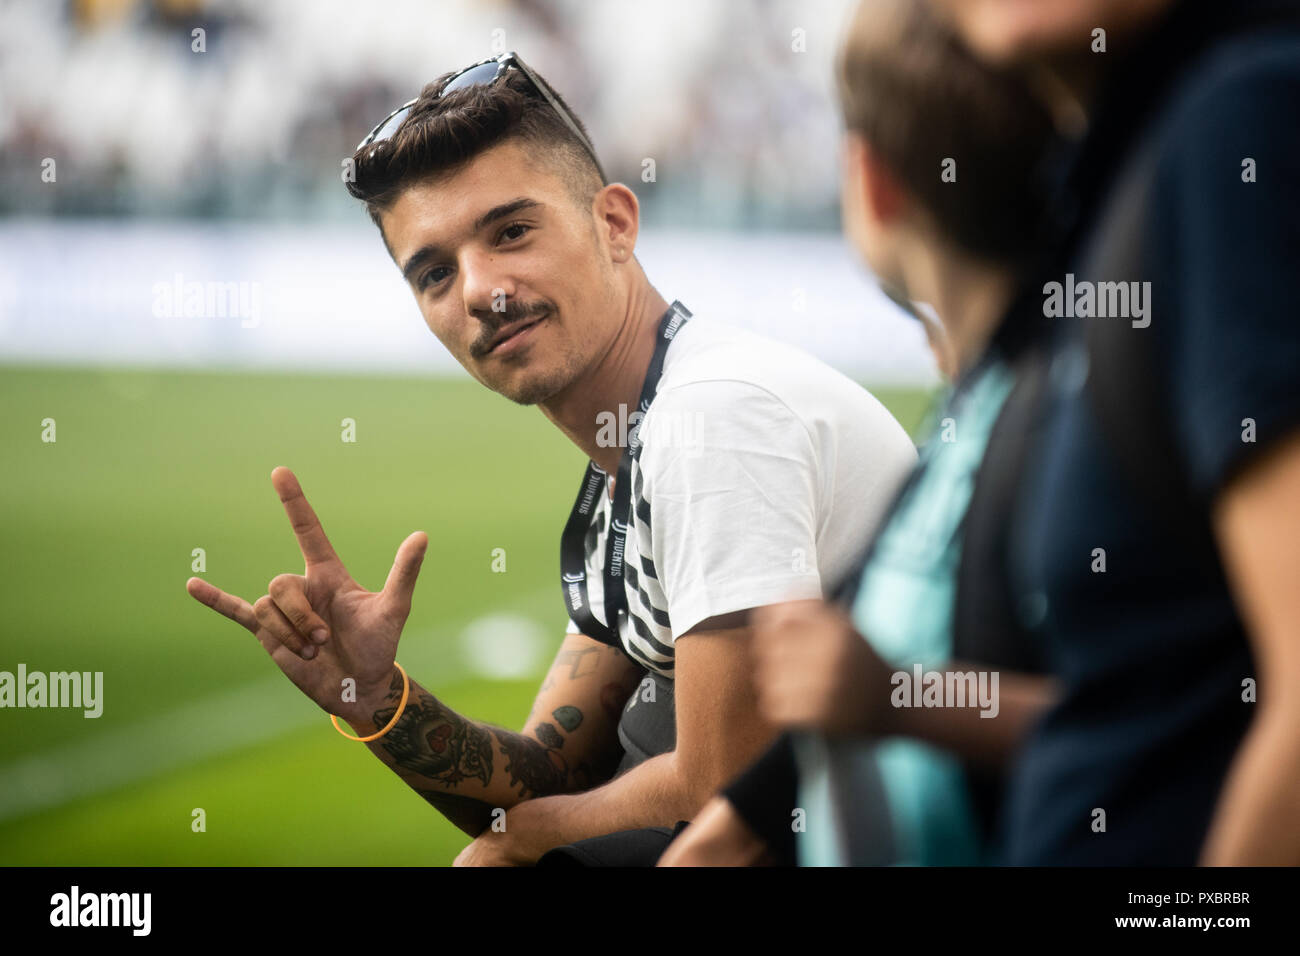 The italian rapper Moreno Donadoni during the Serie A match between Juventus and Genoa at the Allianz Stadium, the final score was 1-1 in Turin, Italy on 20 October 2018. Stock Photo